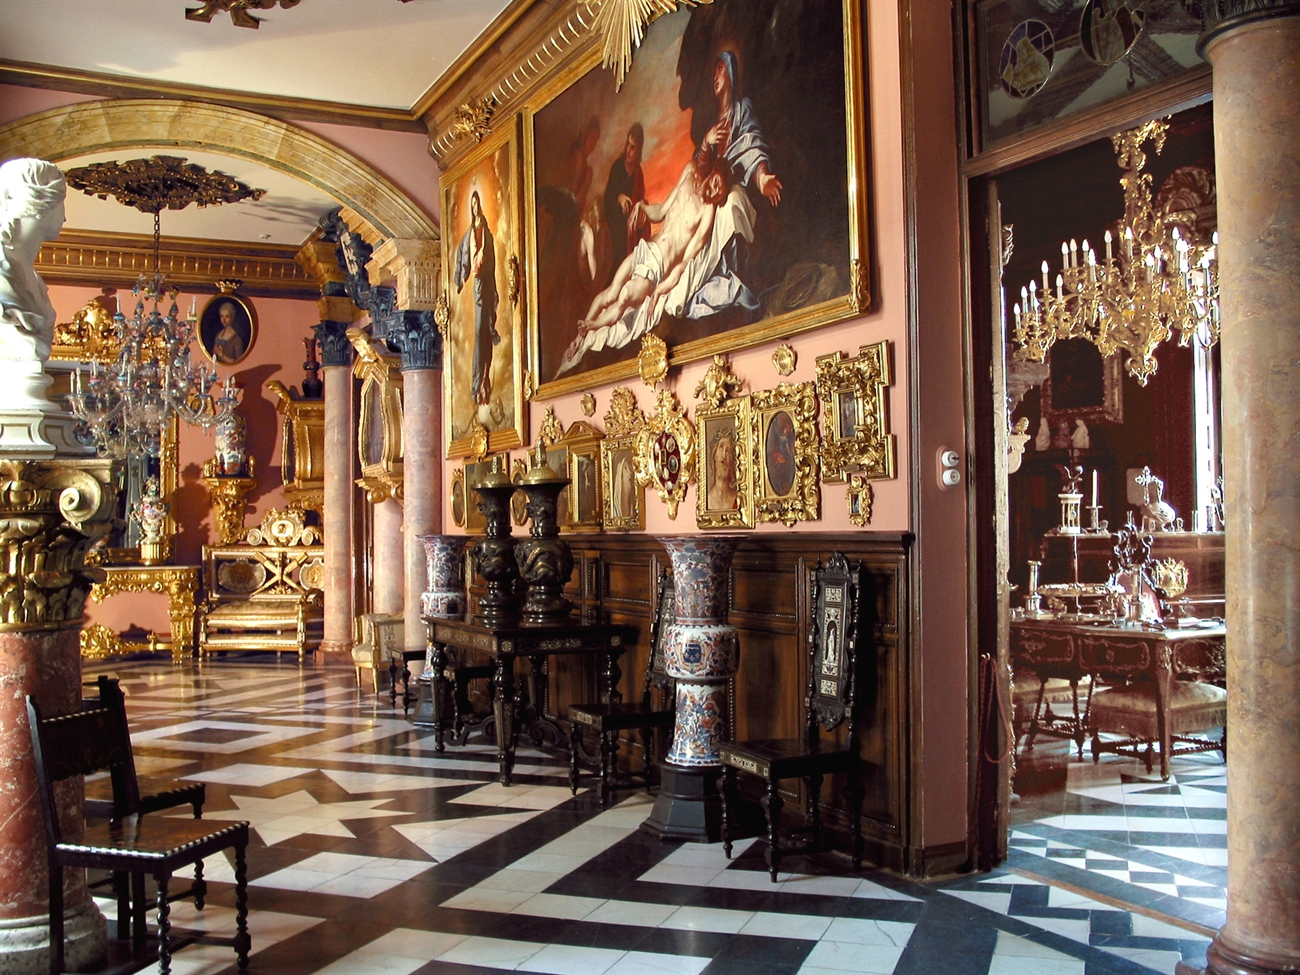 Cerralbo Museum, Madrid: All year